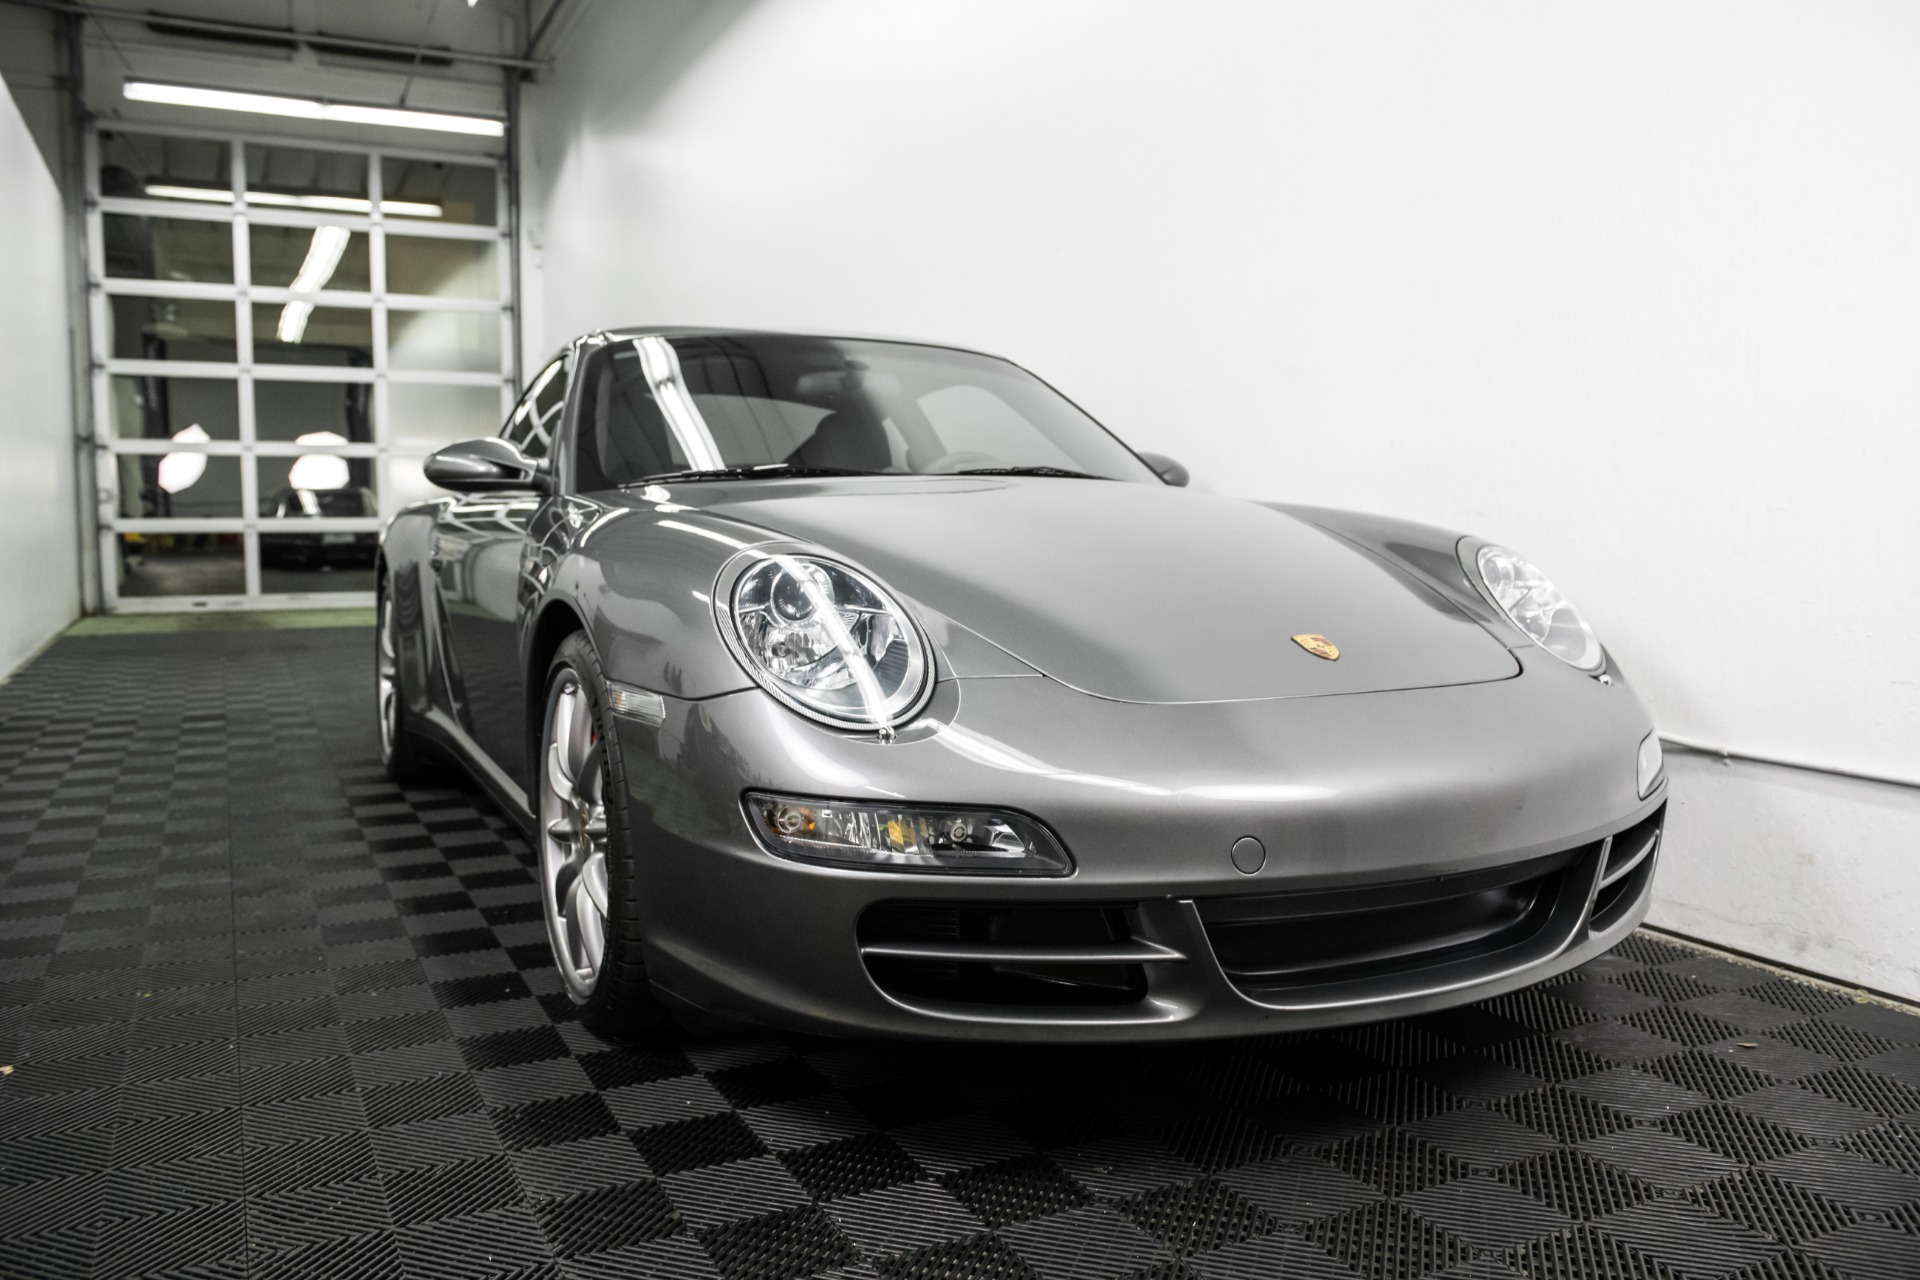 Used 2008 Porsche 911 Carrera 4S Used 2008 Porsche 911 Carrera 4S for sale $48,999 at Response Motors in Mountain View CA 1